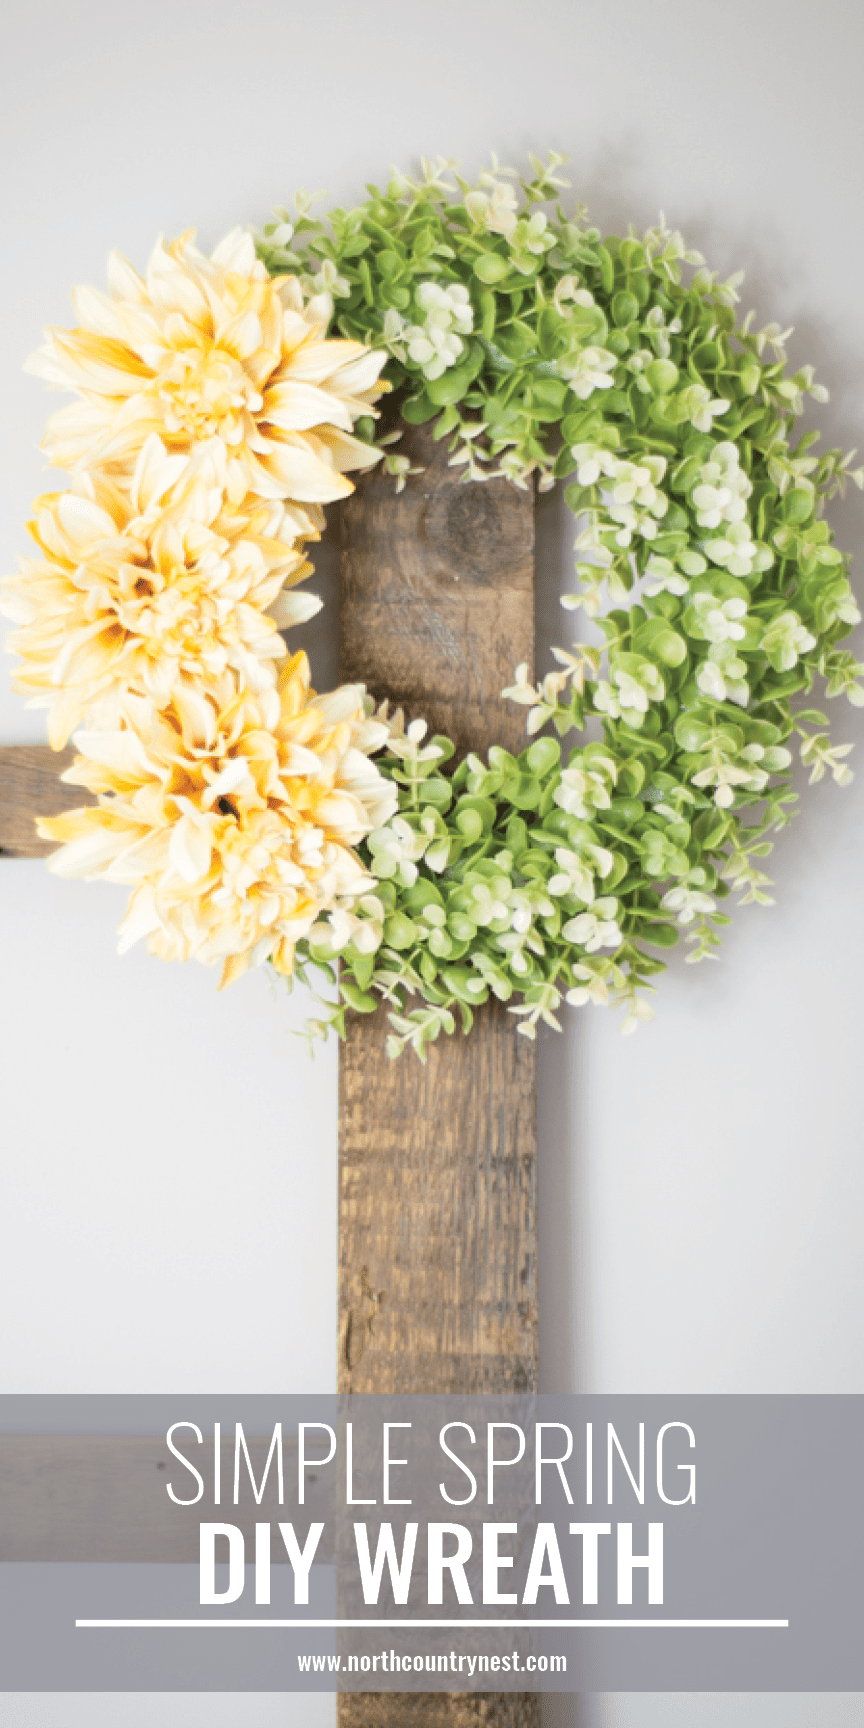 simple spring diy wreath hanging from wooden ladder